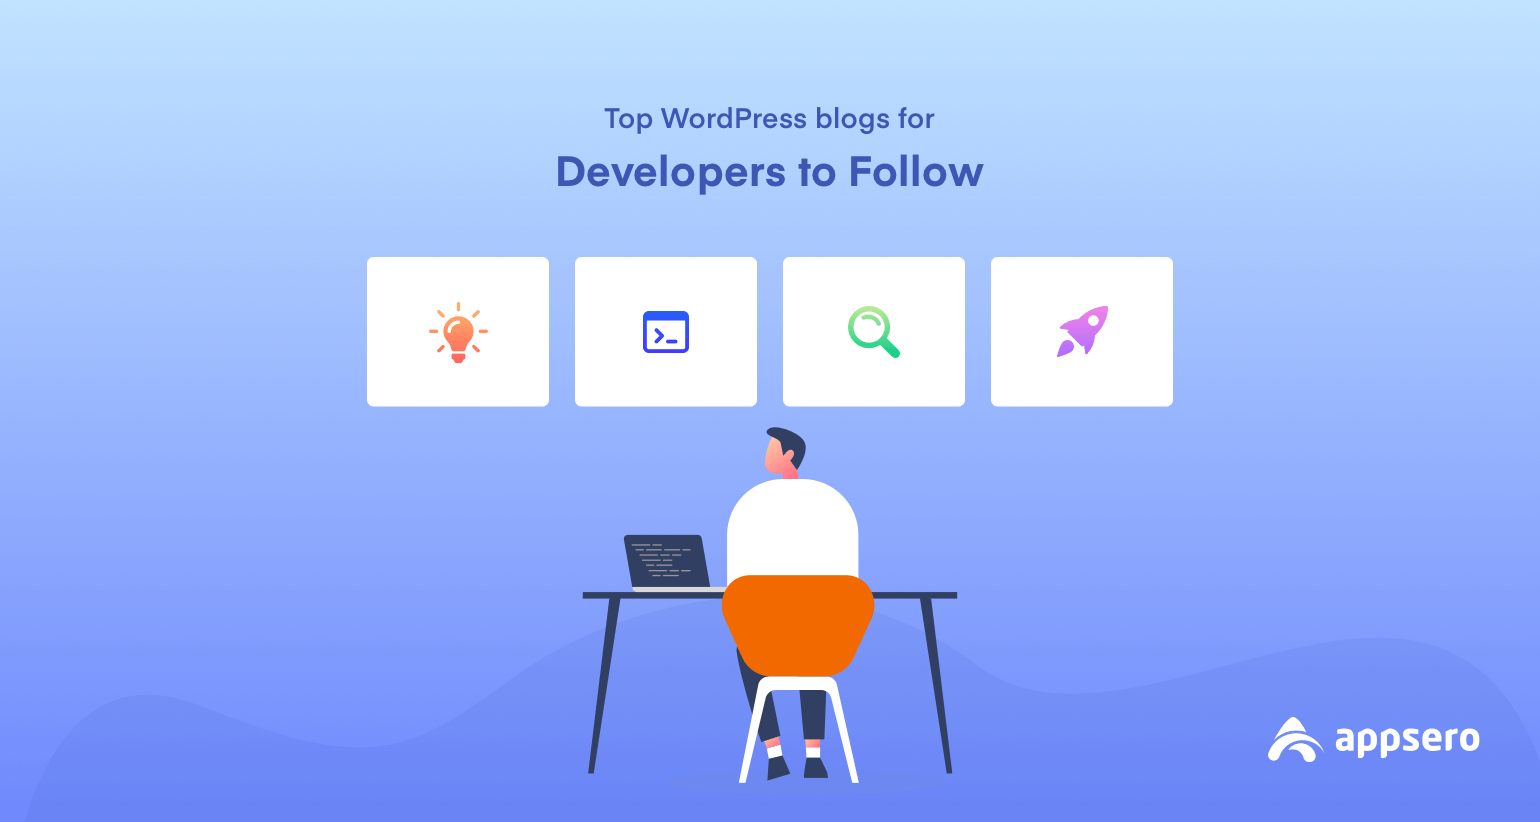 Top 10 WordPress Blogs to Follow as a Developer